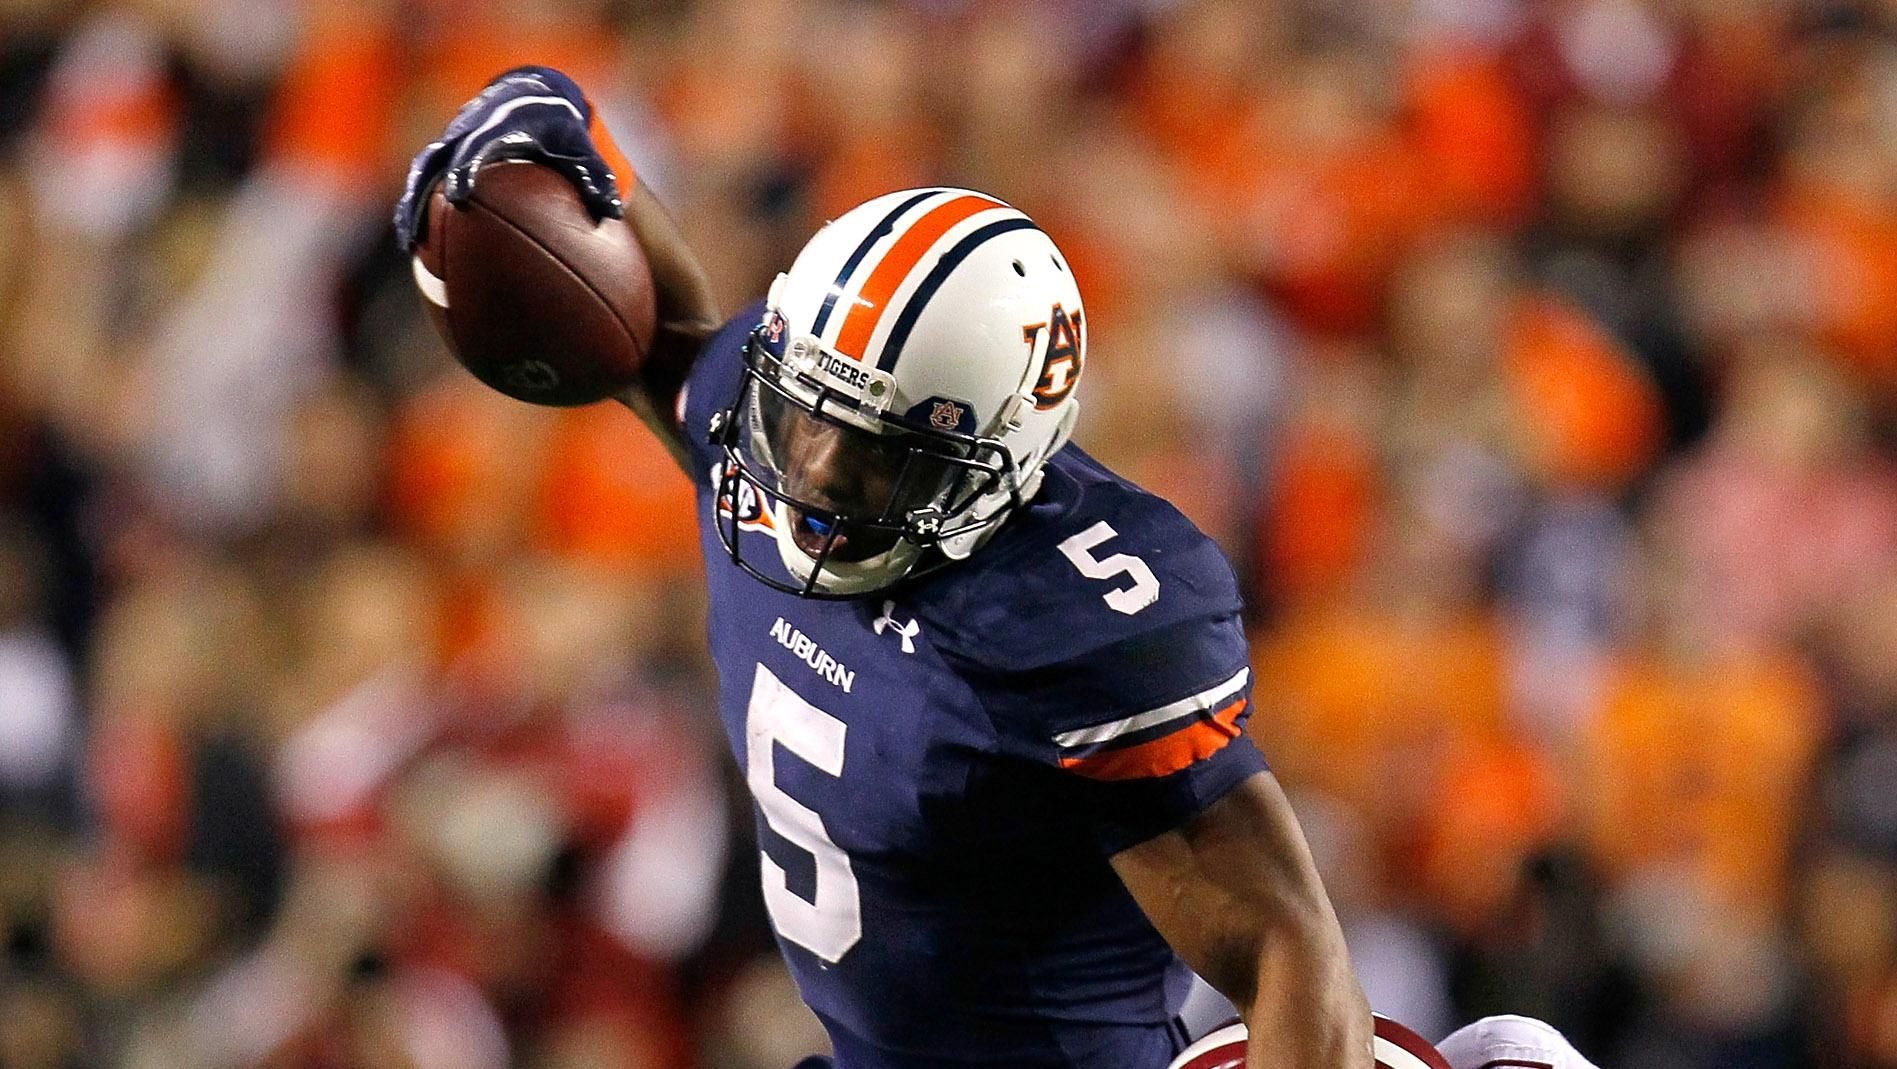 College Football Bowl Games >> Twelve Auburn Tigers football players failed synthetic pot tests